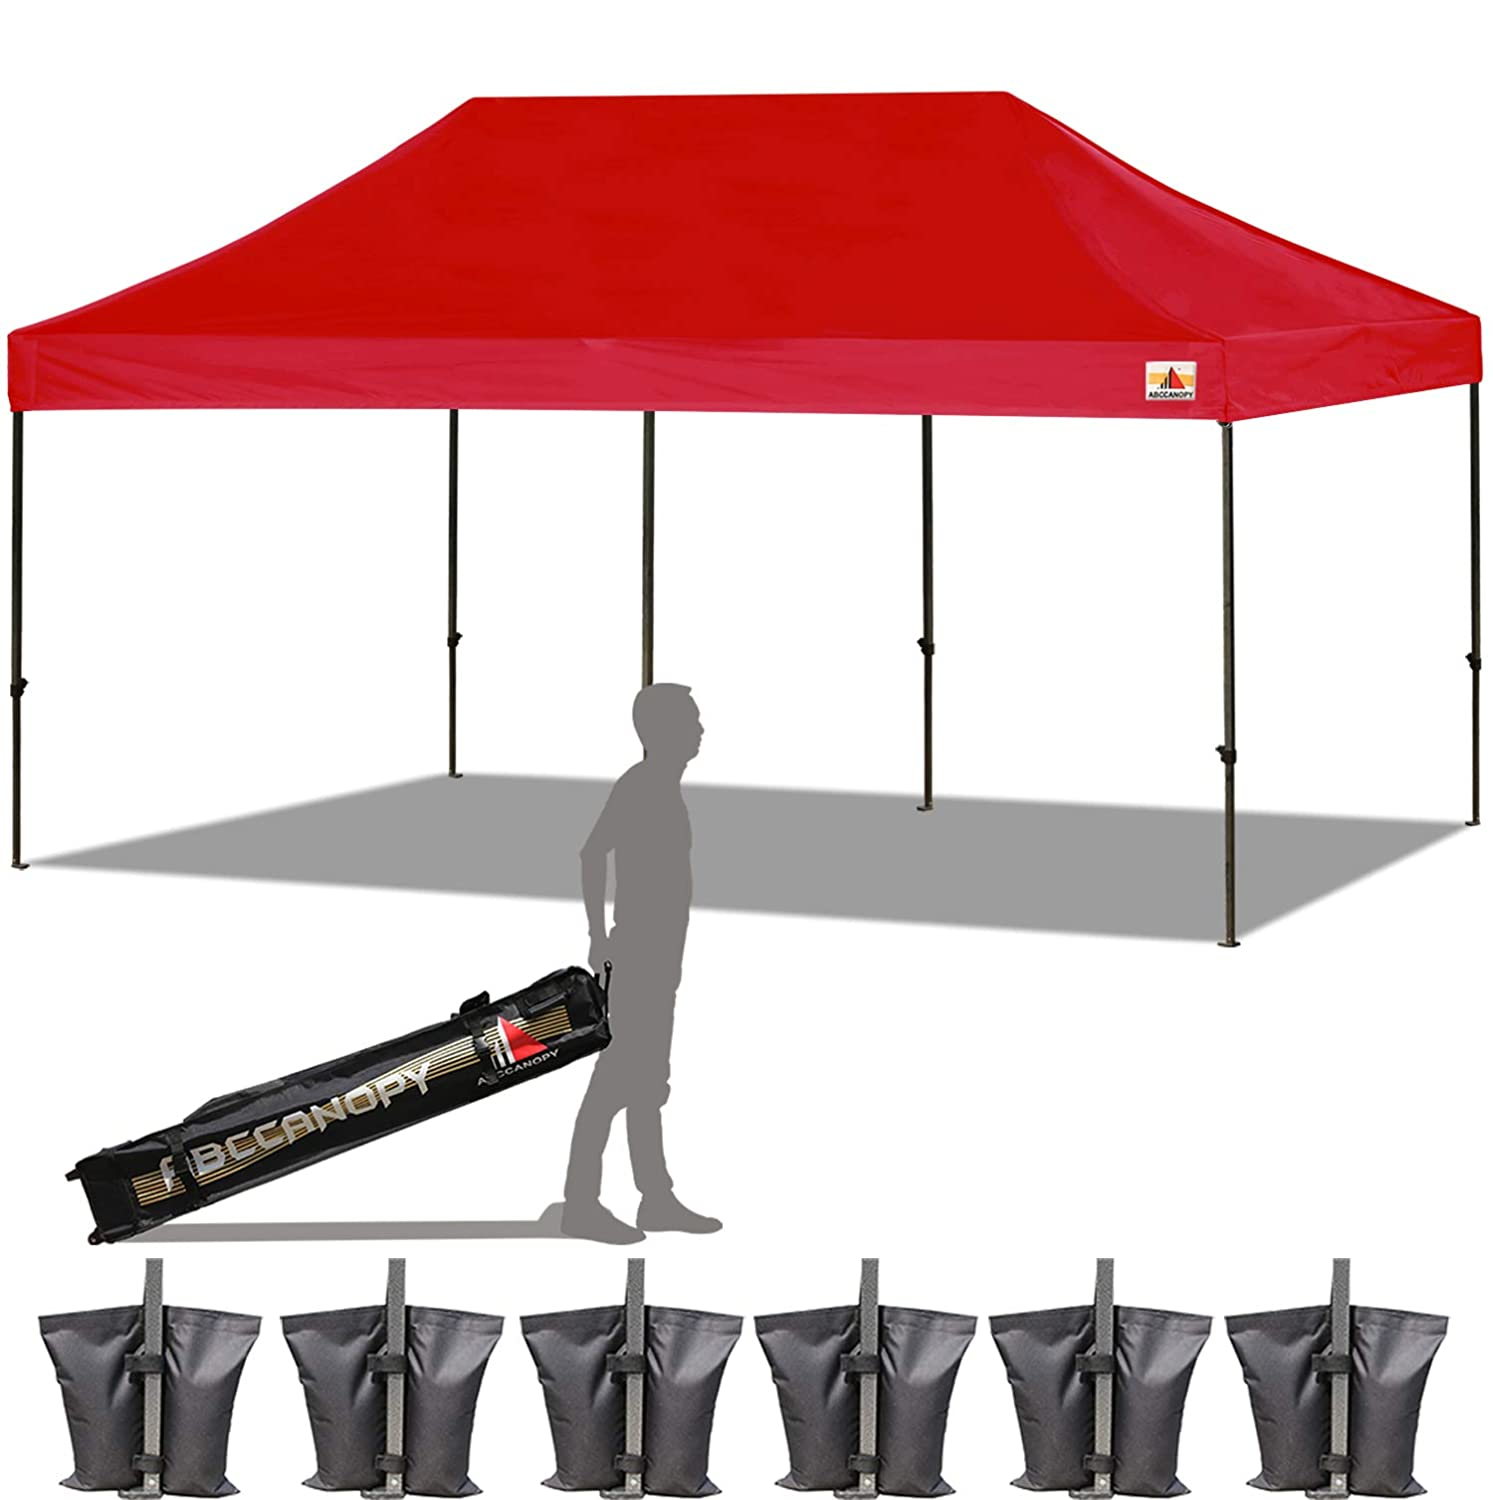 ABCCANOPY 23 Colors 10×20 Pop up Tent Instant Canopy Commercial Outdoor Canopy with Wheeled Carry Bag Bonus 6 Weight Bags Red